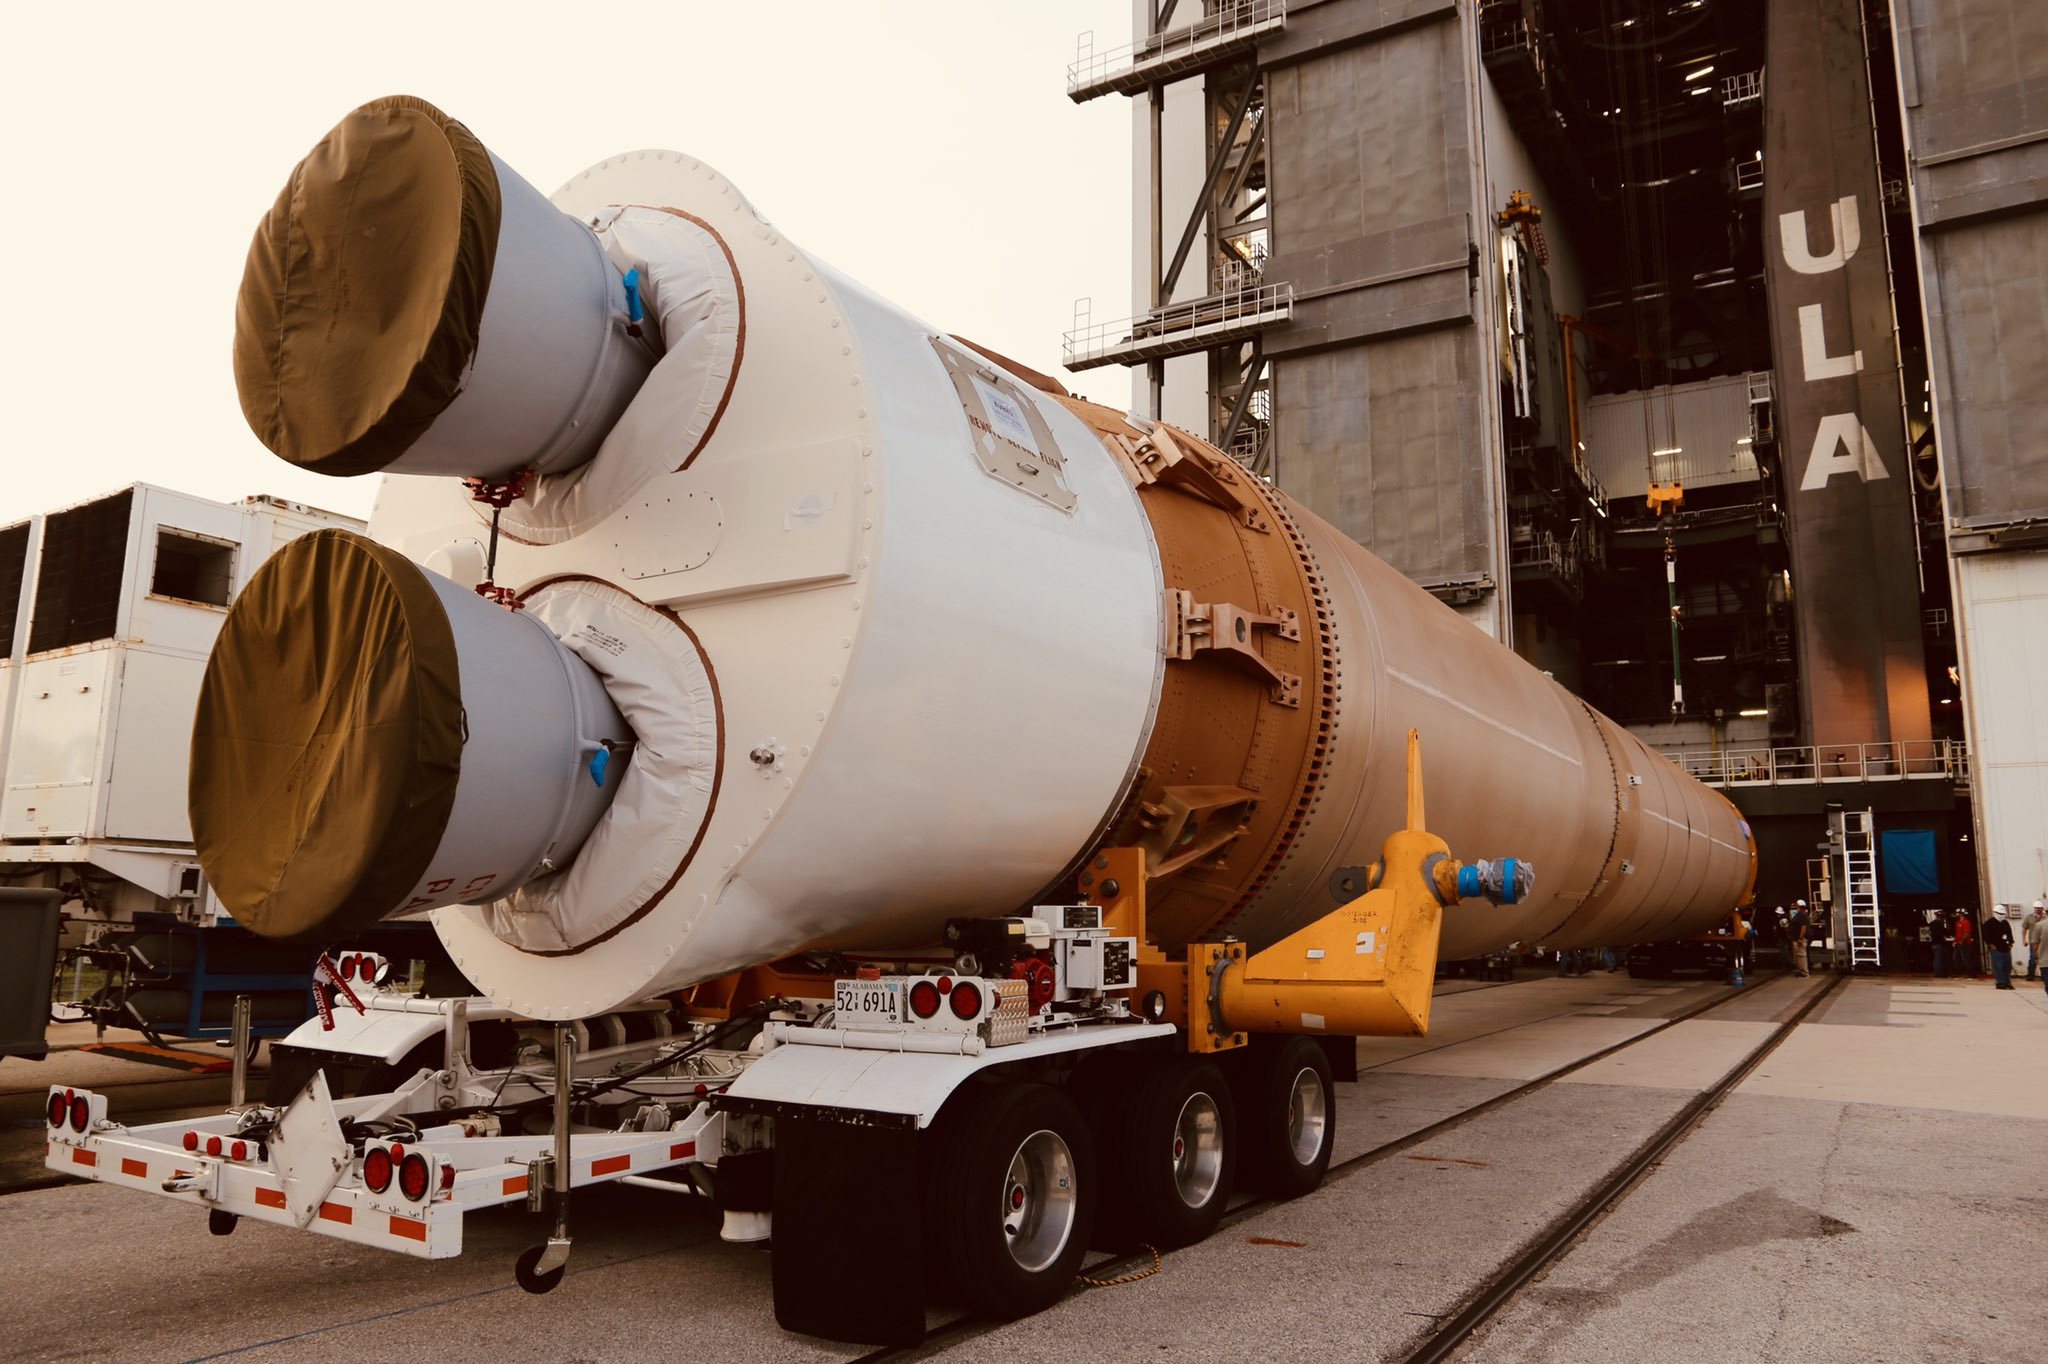 ULA enters LVOS operation ahead of USSF-7 launch